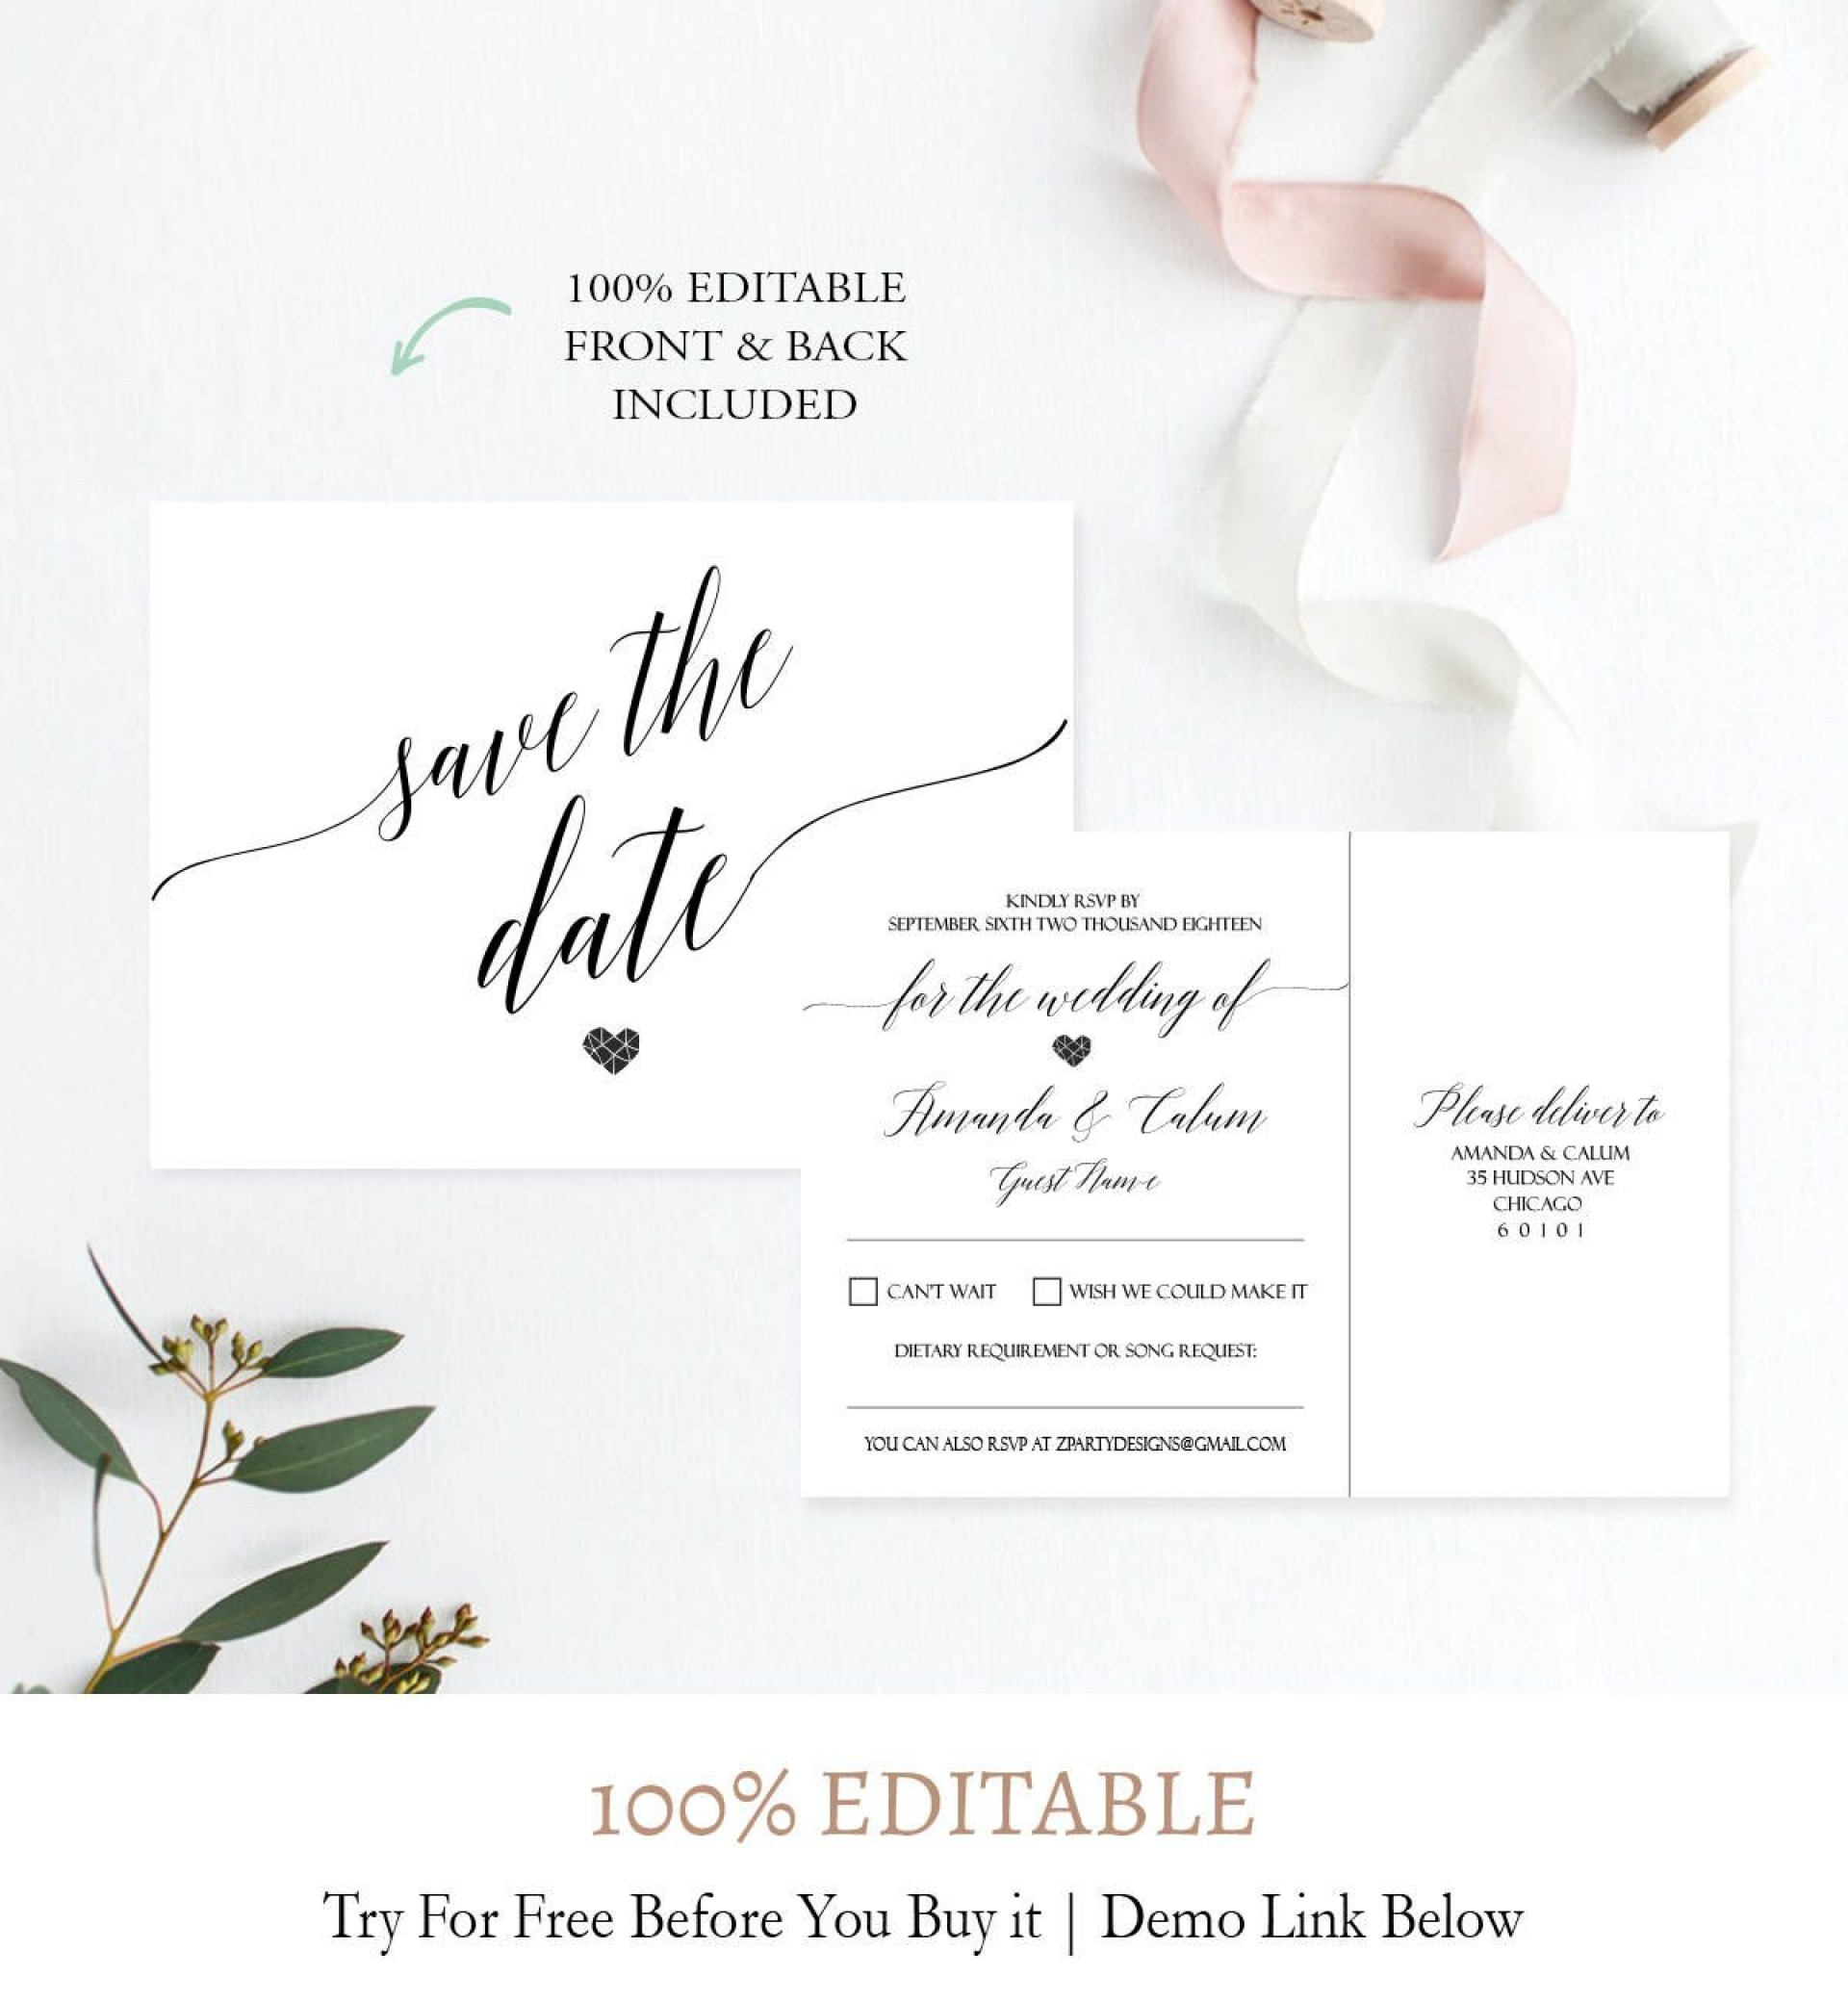 007 Outstanding Save The Date Postcard Template Image  Diy Free Birthday1920